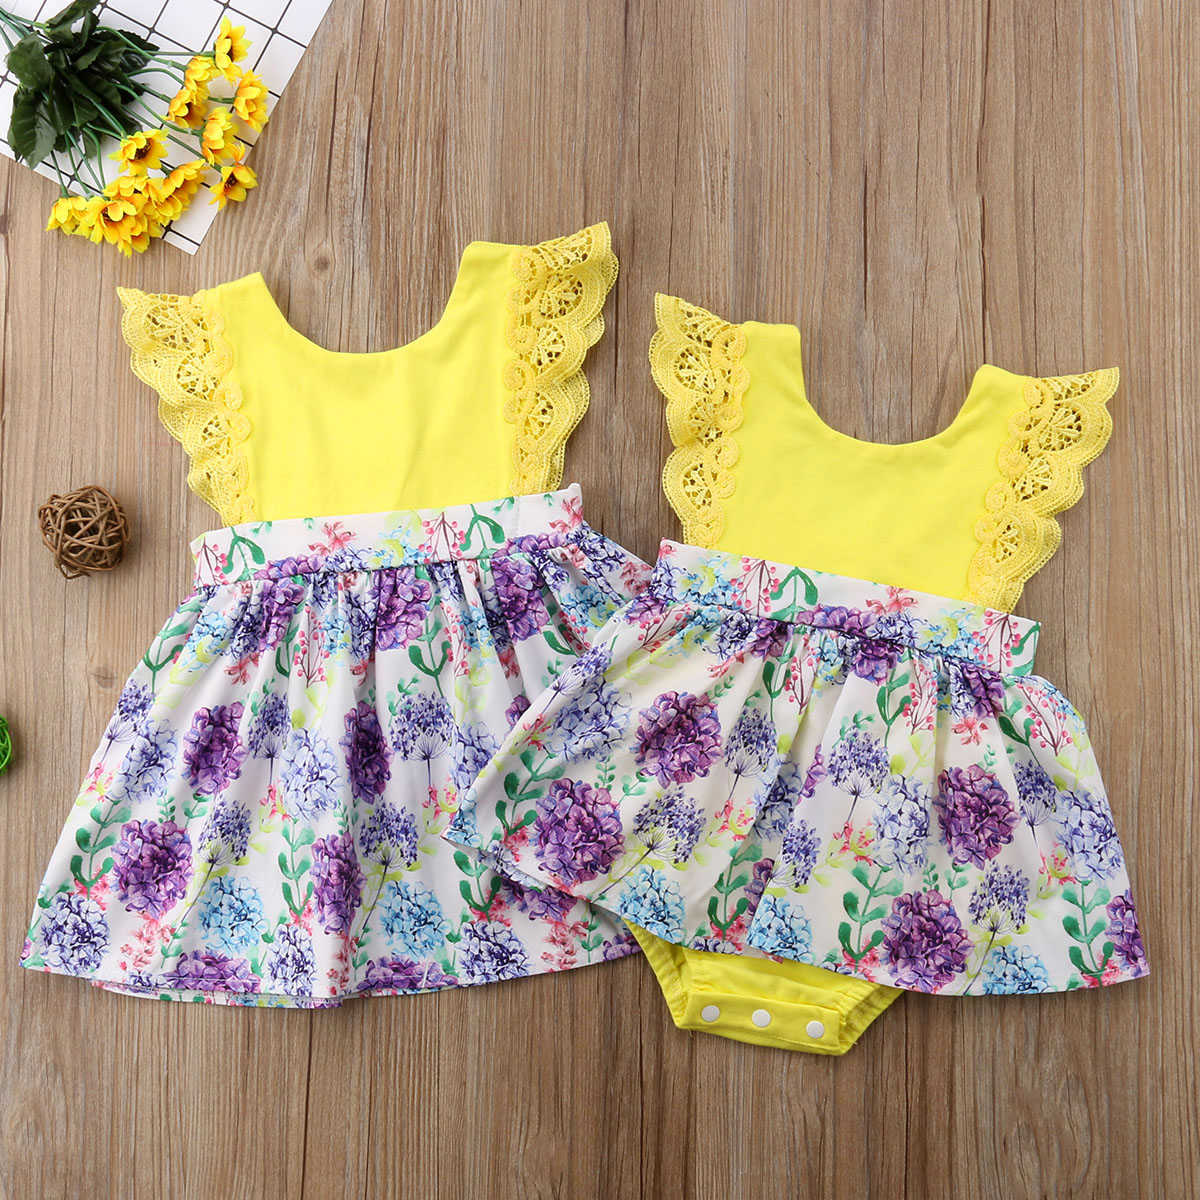 31a7b99d8 2018 Toddler Kid Baby Girls Lace Flower Yellow Sister Match Romper Dress  Outfits Clothes Family Matching Yellow Cute Summer Set